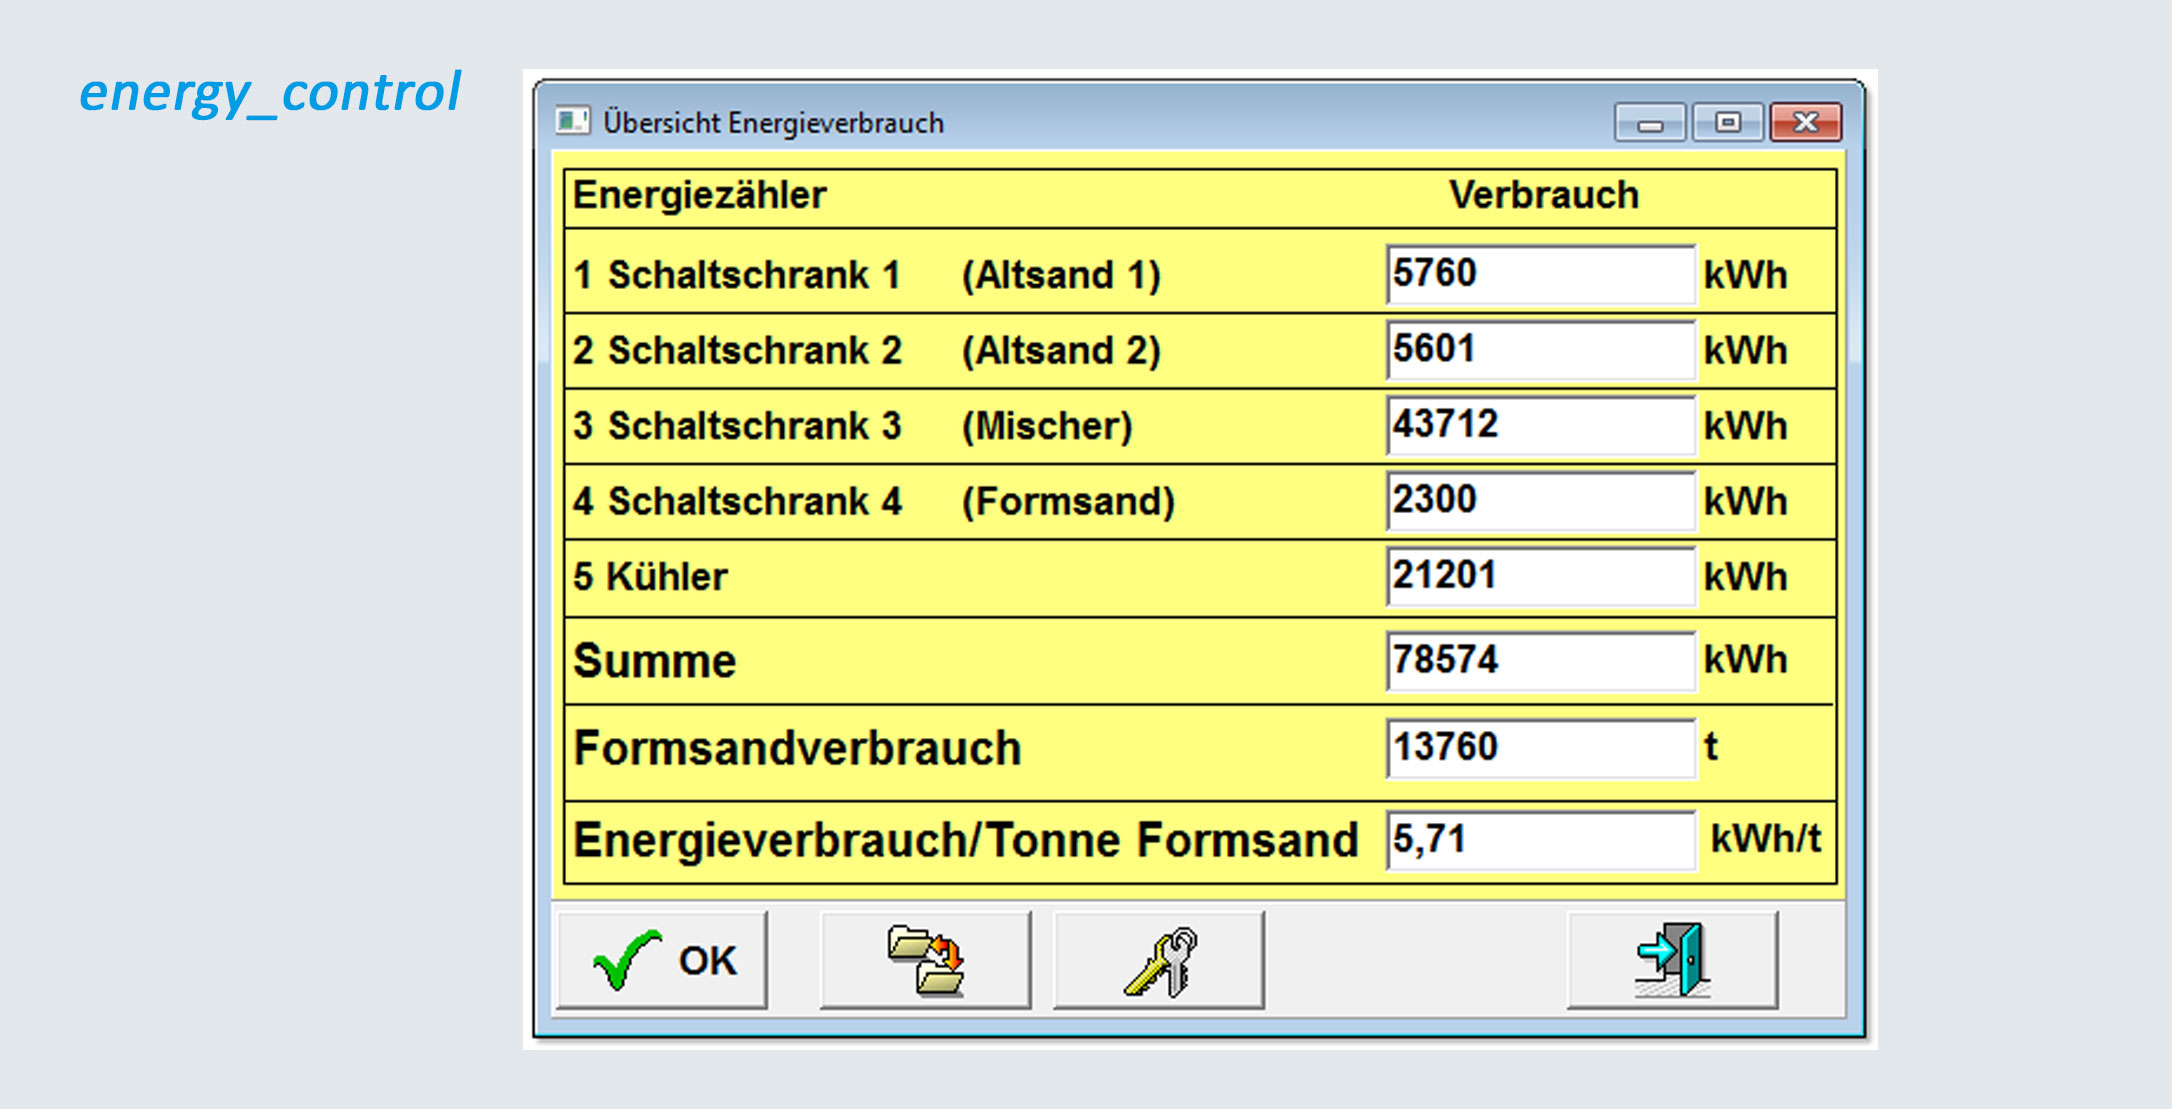 Energiemanagement-Tool energy_control